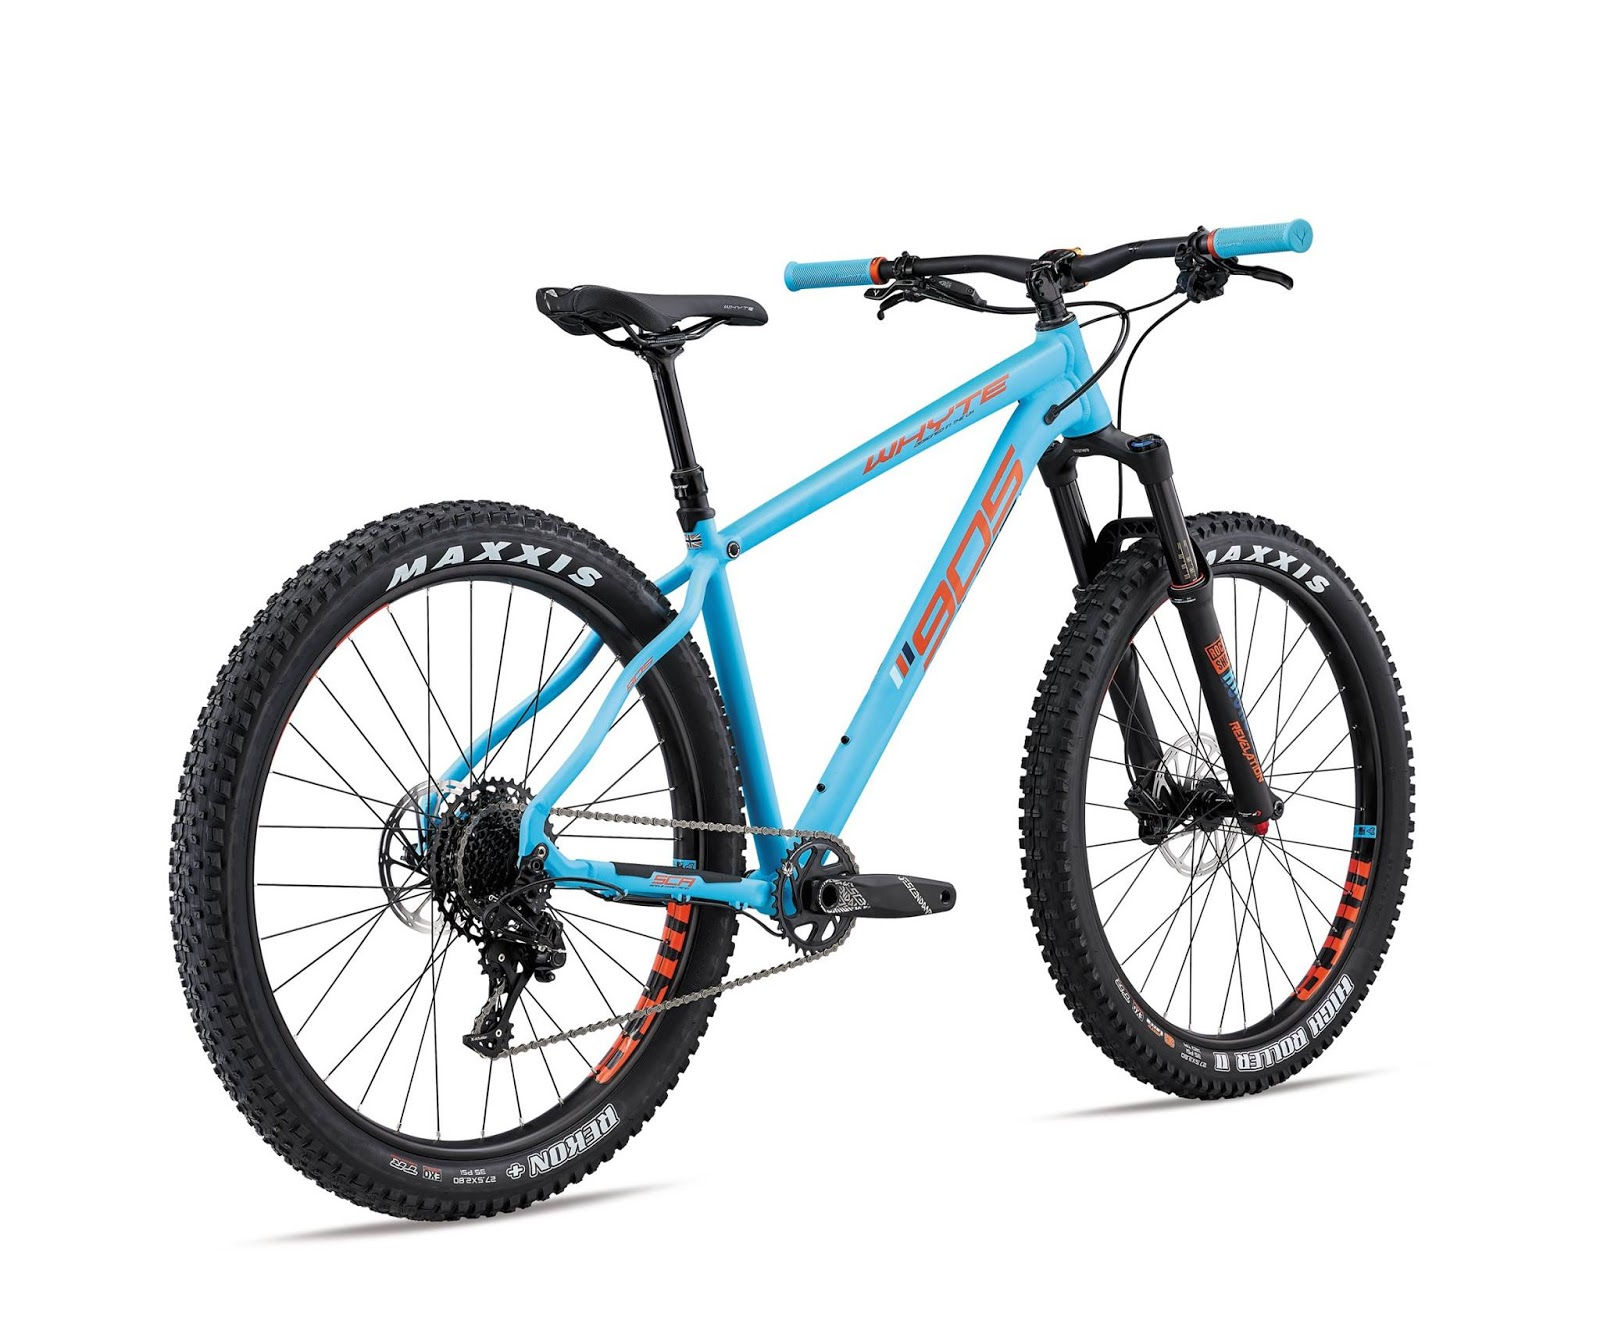 Whyte Bikes Revealed Their New 905 Hardtail Mtb